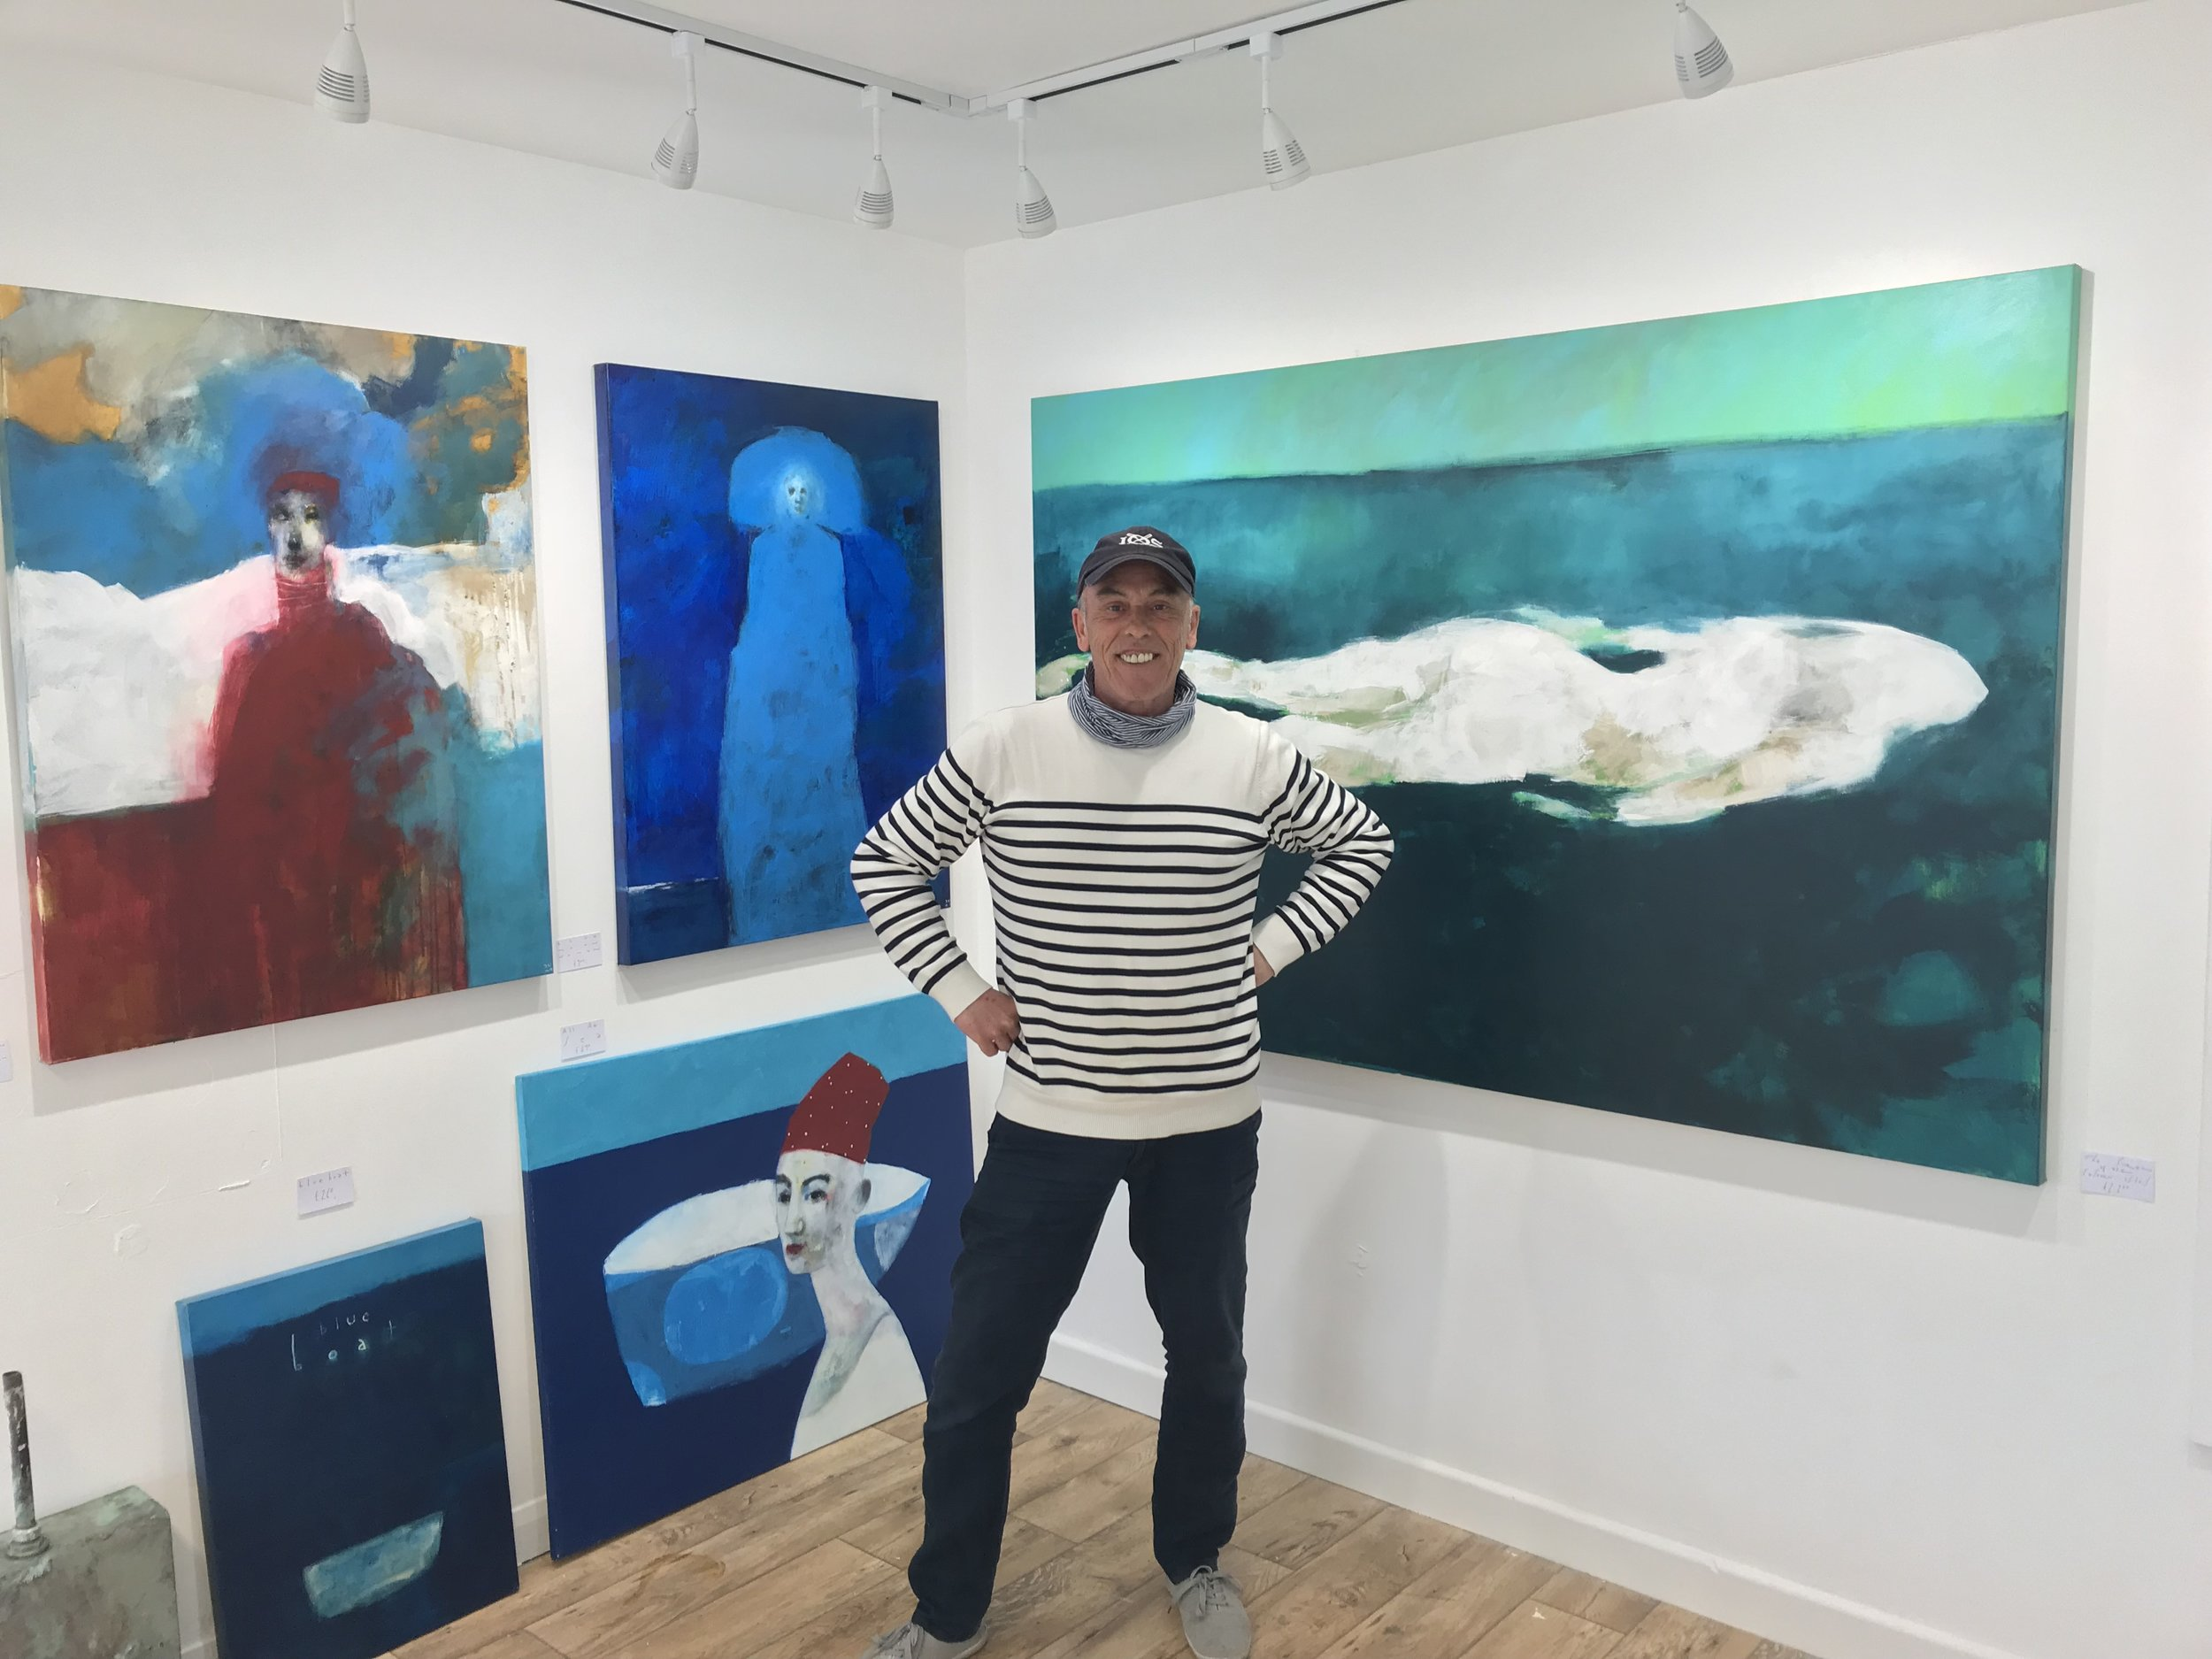 Ian with some of his work at The White Gallery on St Mary's.